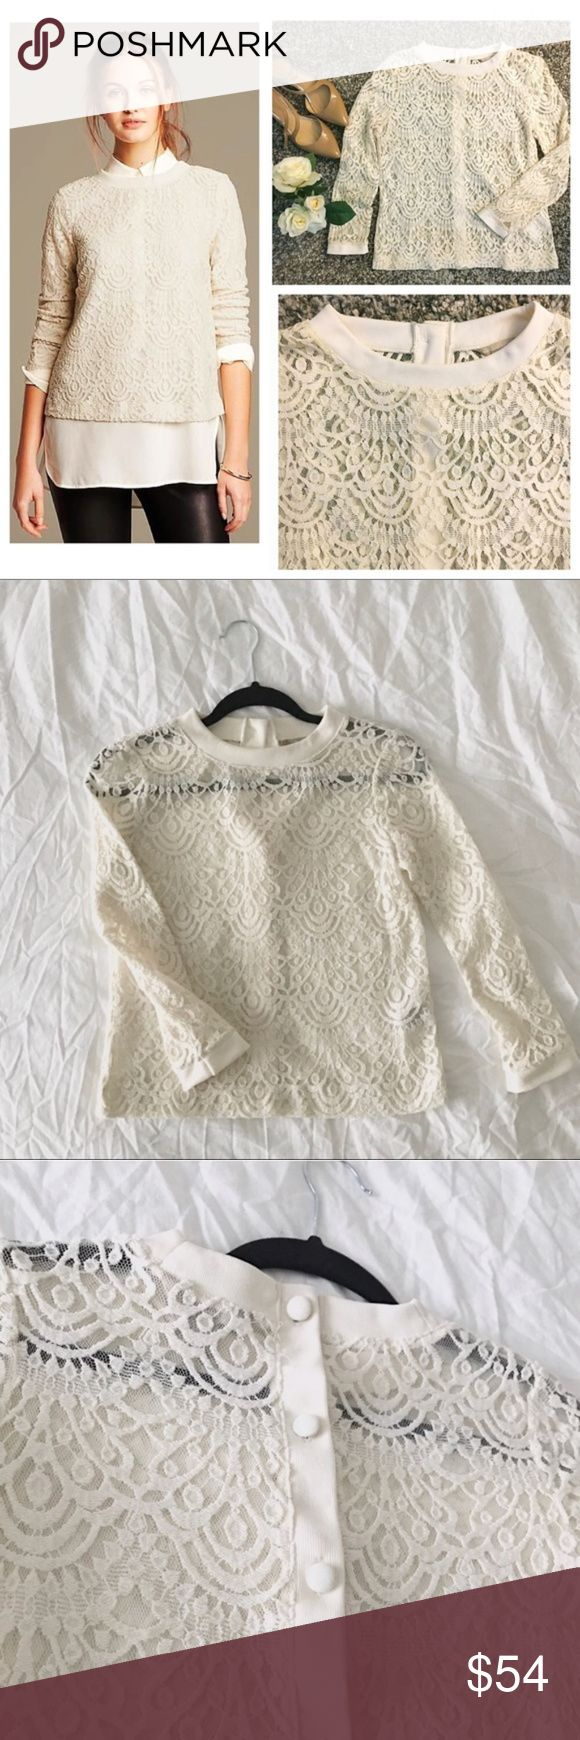 NWOT🌟HP🌟Banana Republic Sheer Lace Pullover Top! HOST PICK! Beautiful Banana Republic Pullover Blouse! Perfect for work settings or nice occasions! Slightly sheer, which is perfect to wear over a nice cami or button down shirt! Excellent used condition, no signs of wear. This long sleeve lace blouse features a beautiful button back detail! Firm fit, size XS Petite. Ivory/cream color. Add this beautiful top to your wardrobe today! Bundle your purchase for 20% off! Banana Republic Tops…